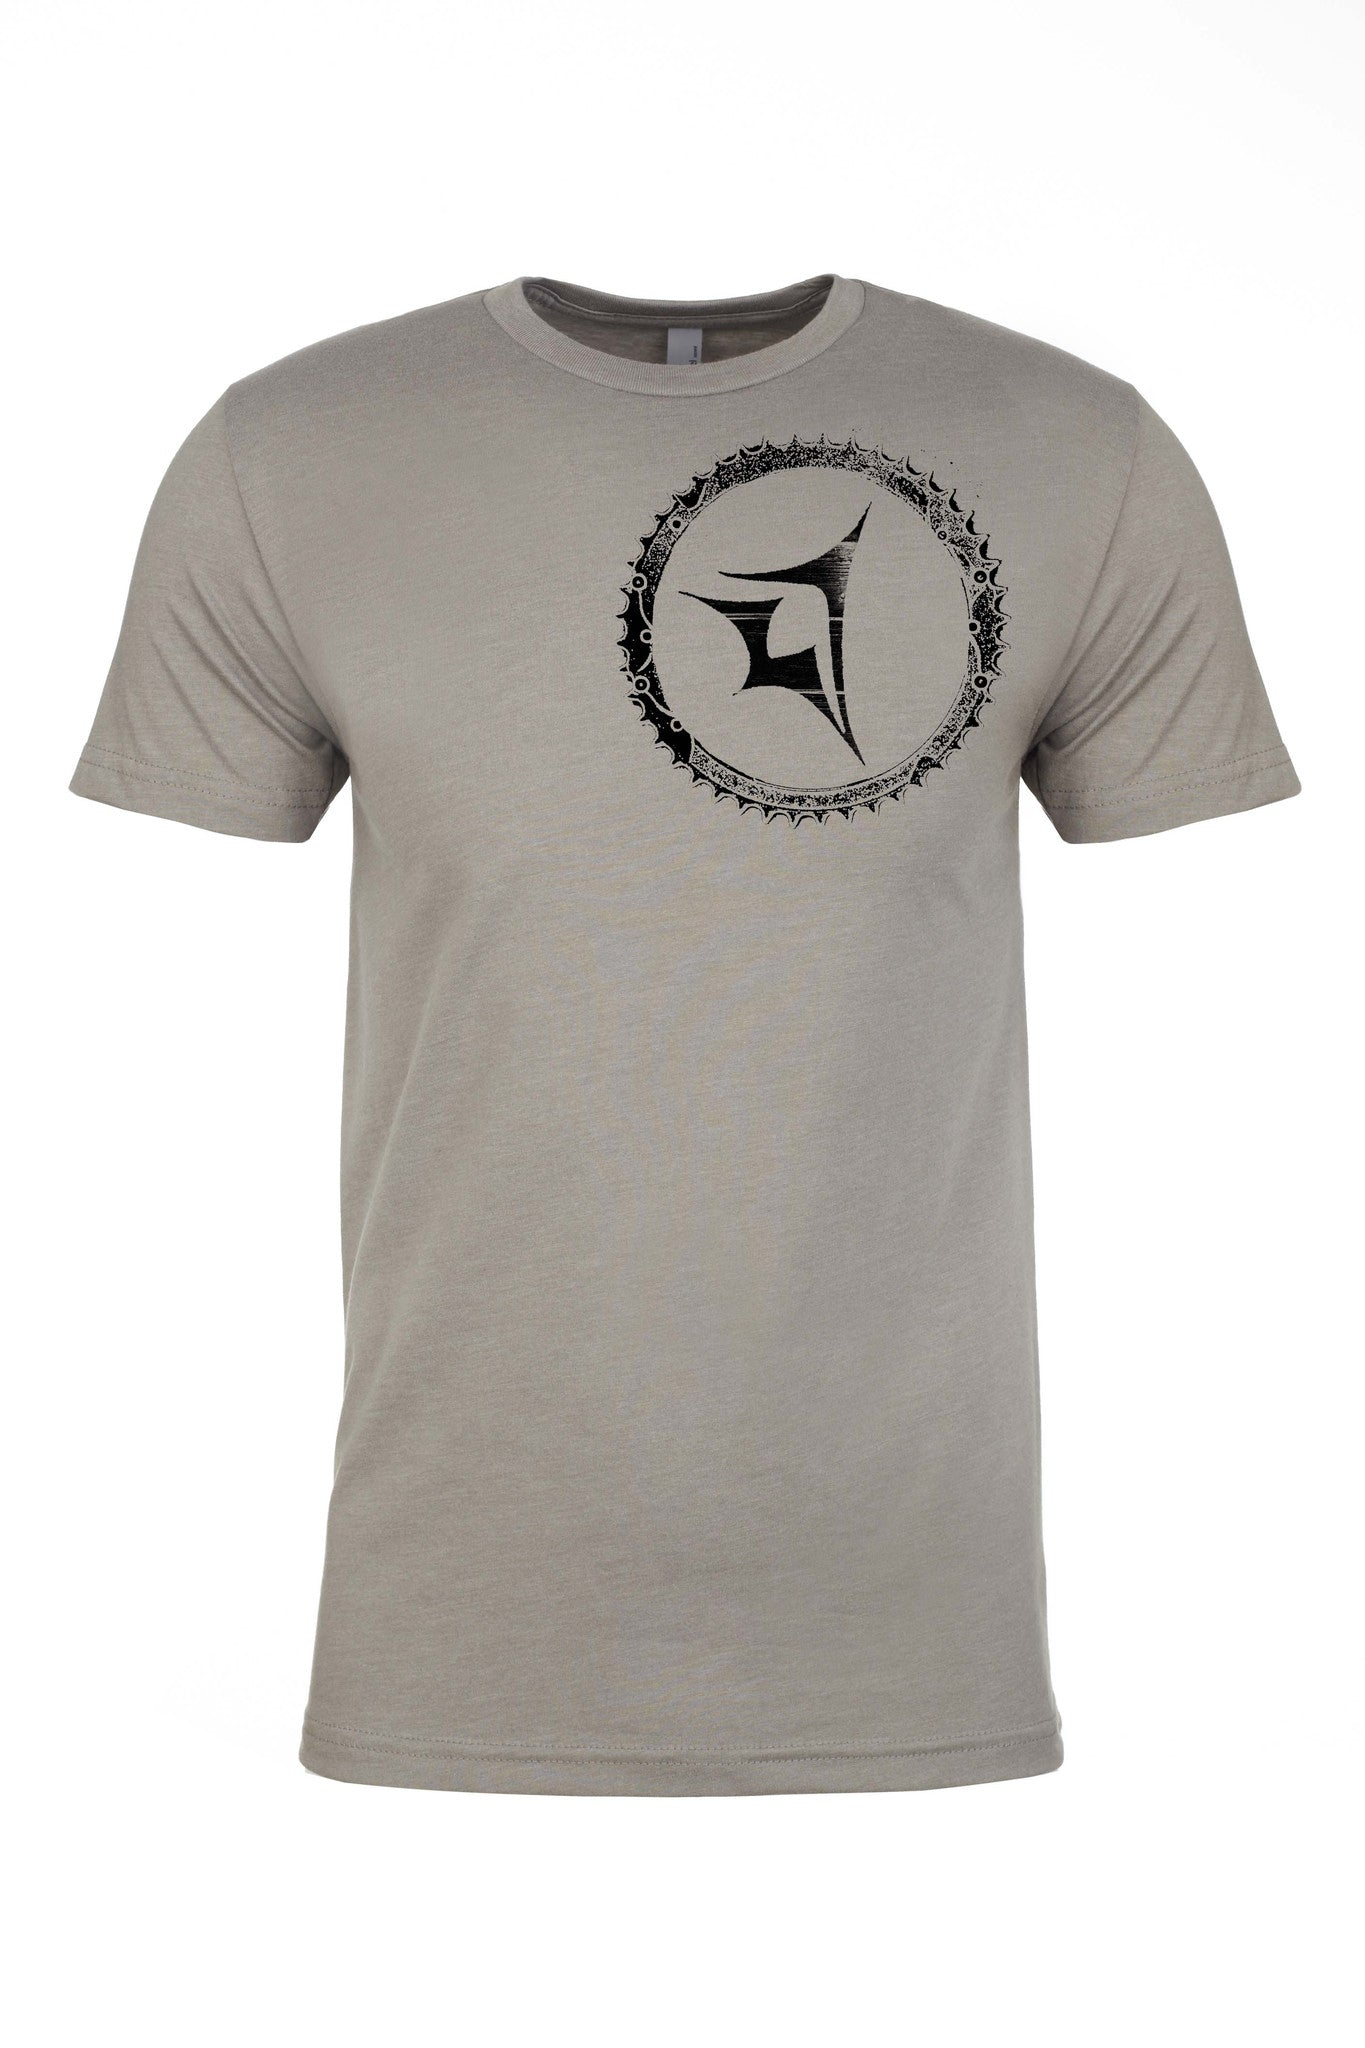 Chain ring mountain bike t shirt